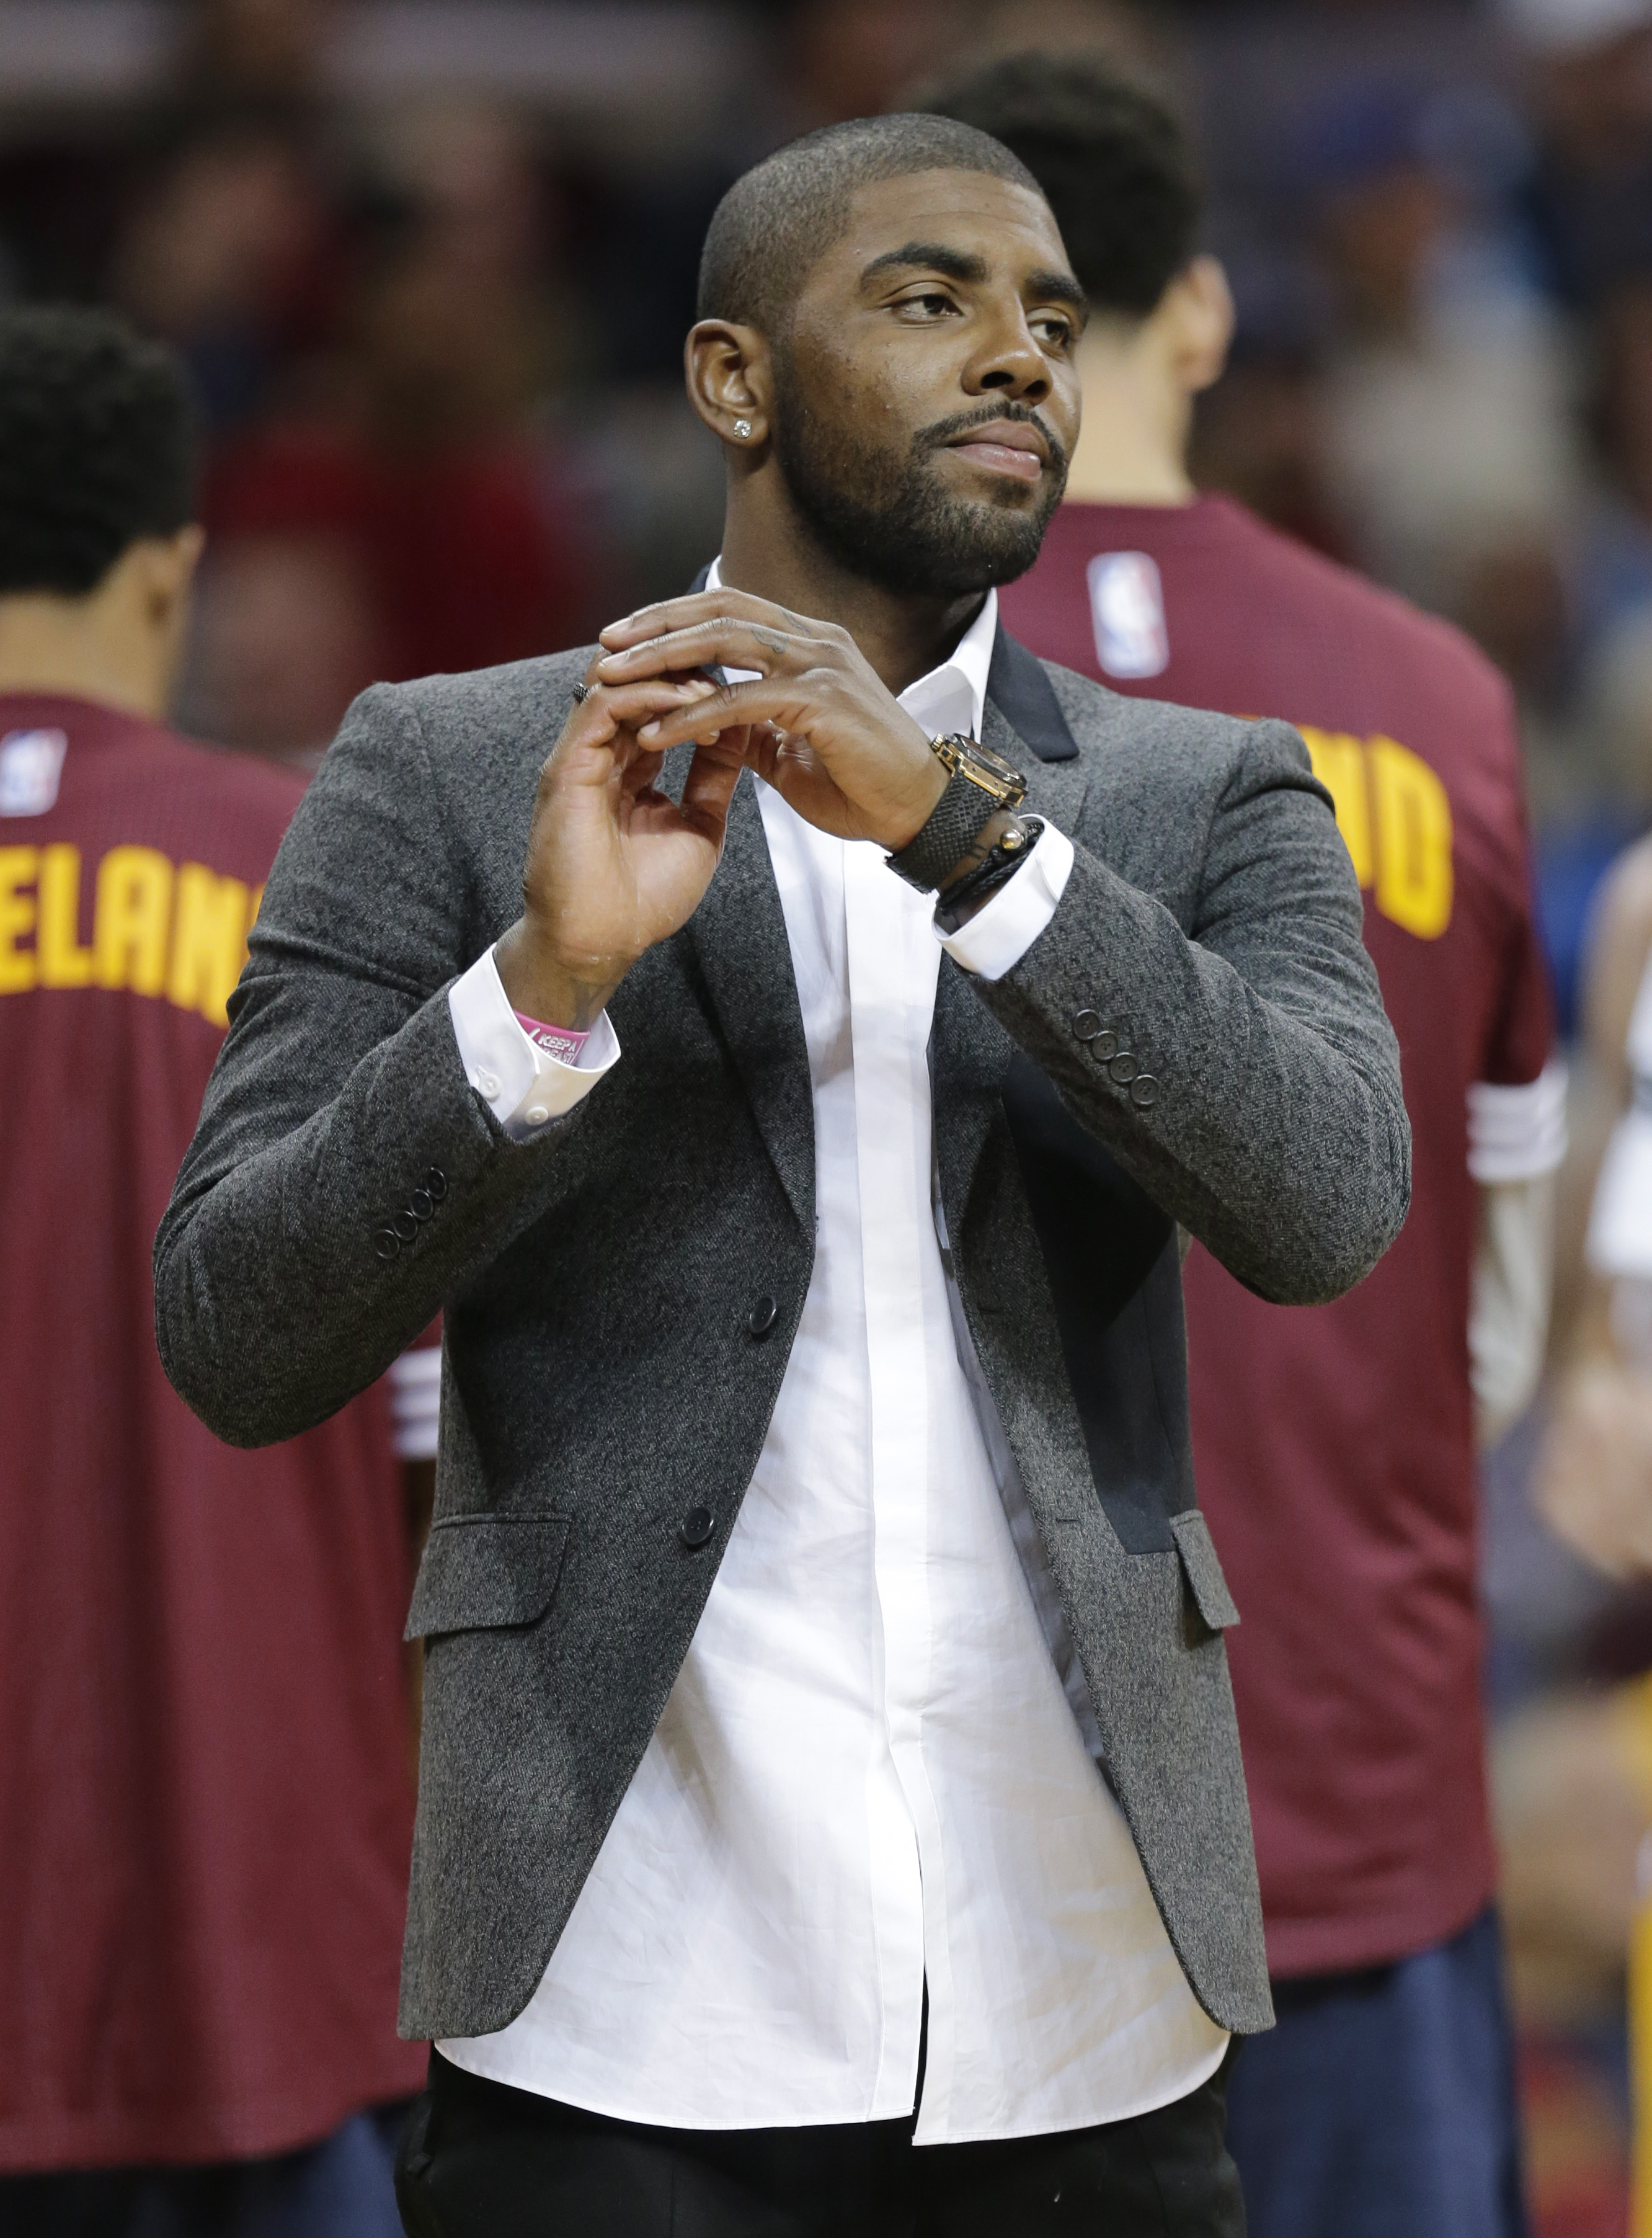 Cleveland Cavaliers' Kyrie Irving is shown during a timeout in the first half of an NBA basketball game against the Milwaukee Bucks Tuesday, Oct. 13, 2015, in Cleveland. (AP Photo/Tony Dejak)